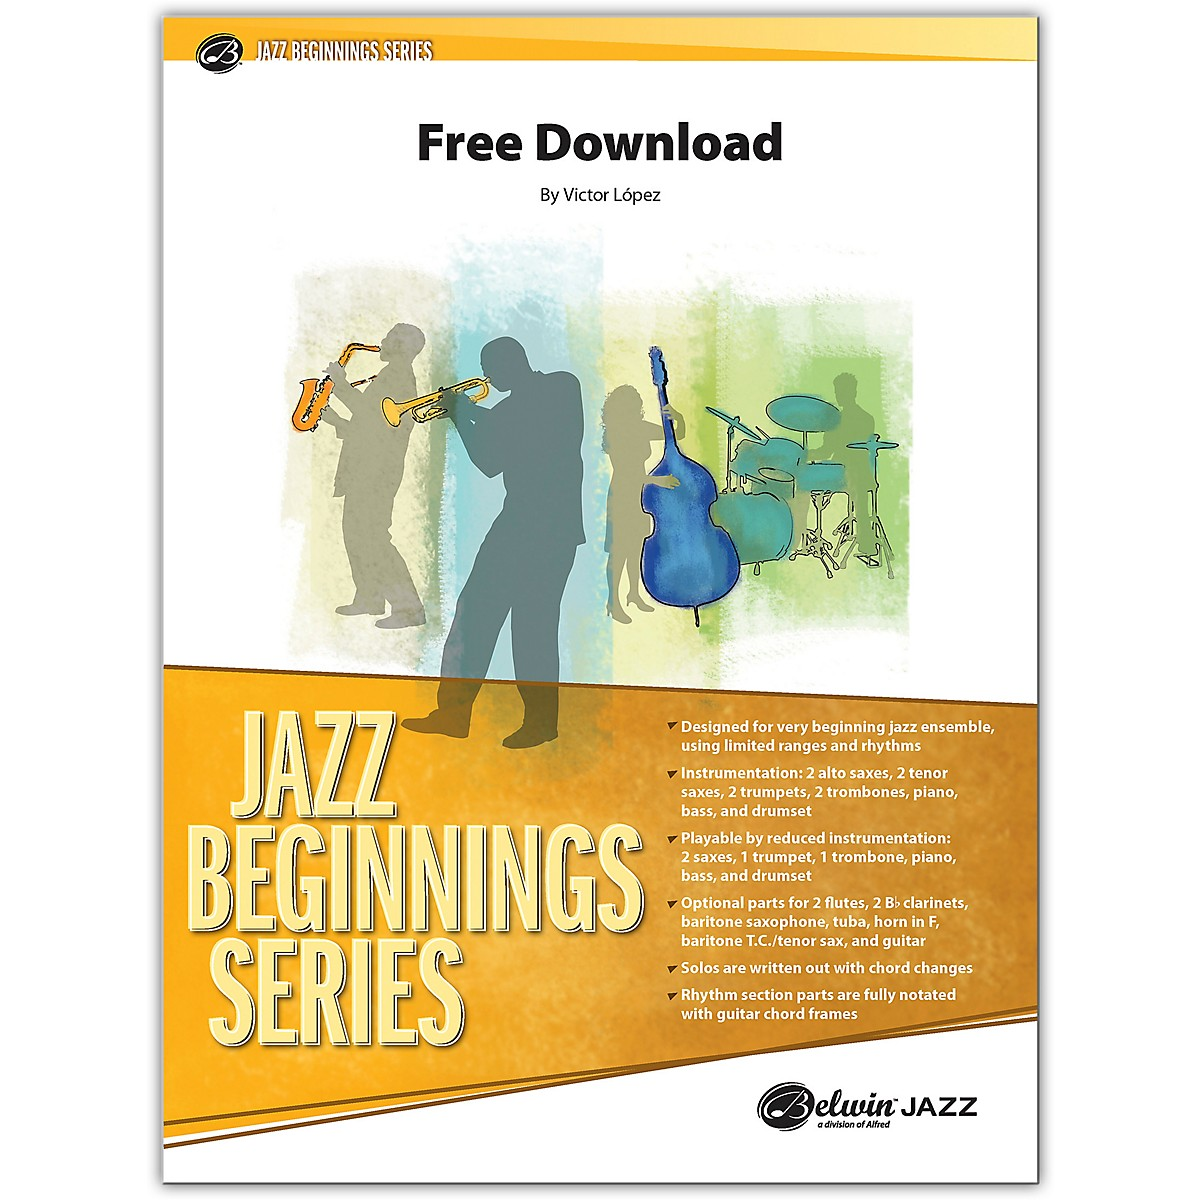 BELWIN Free Download Conductor Score 0.5 (Very Easy)